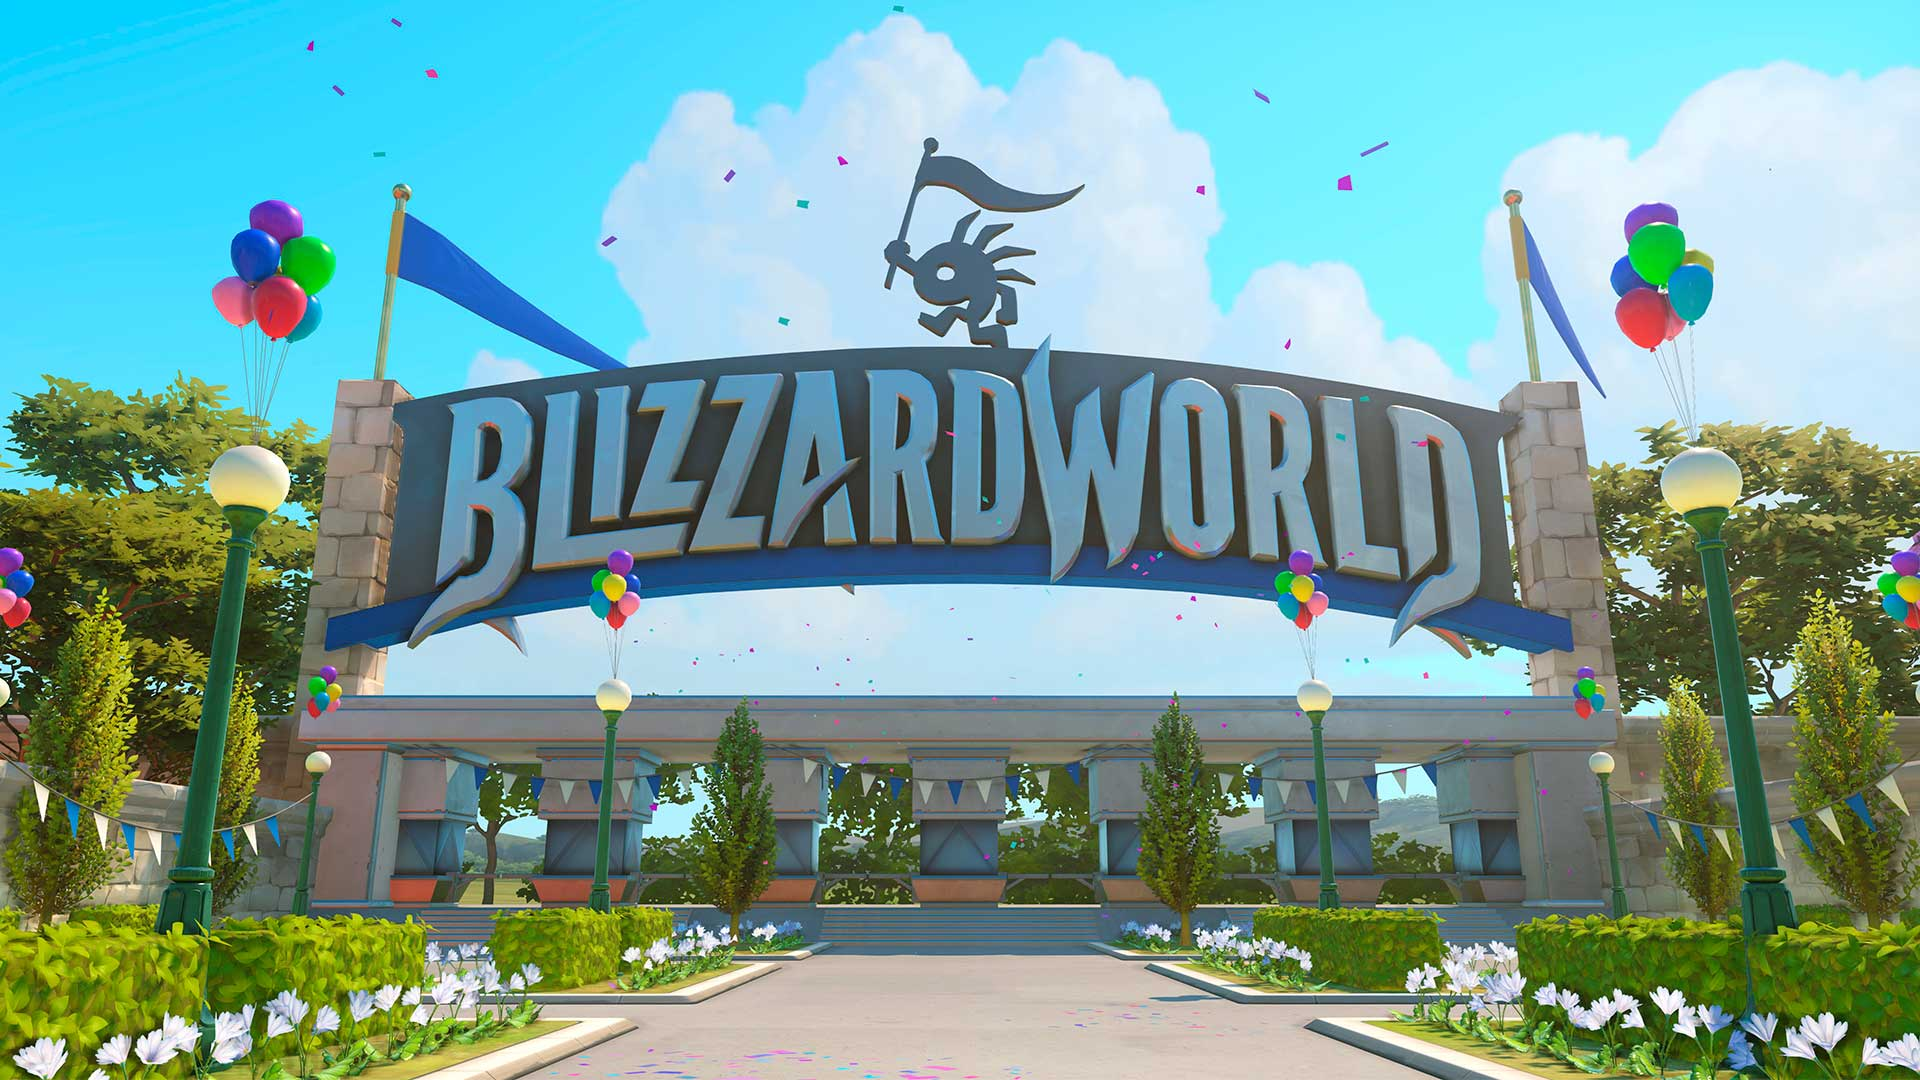 entrada de Blizzard World